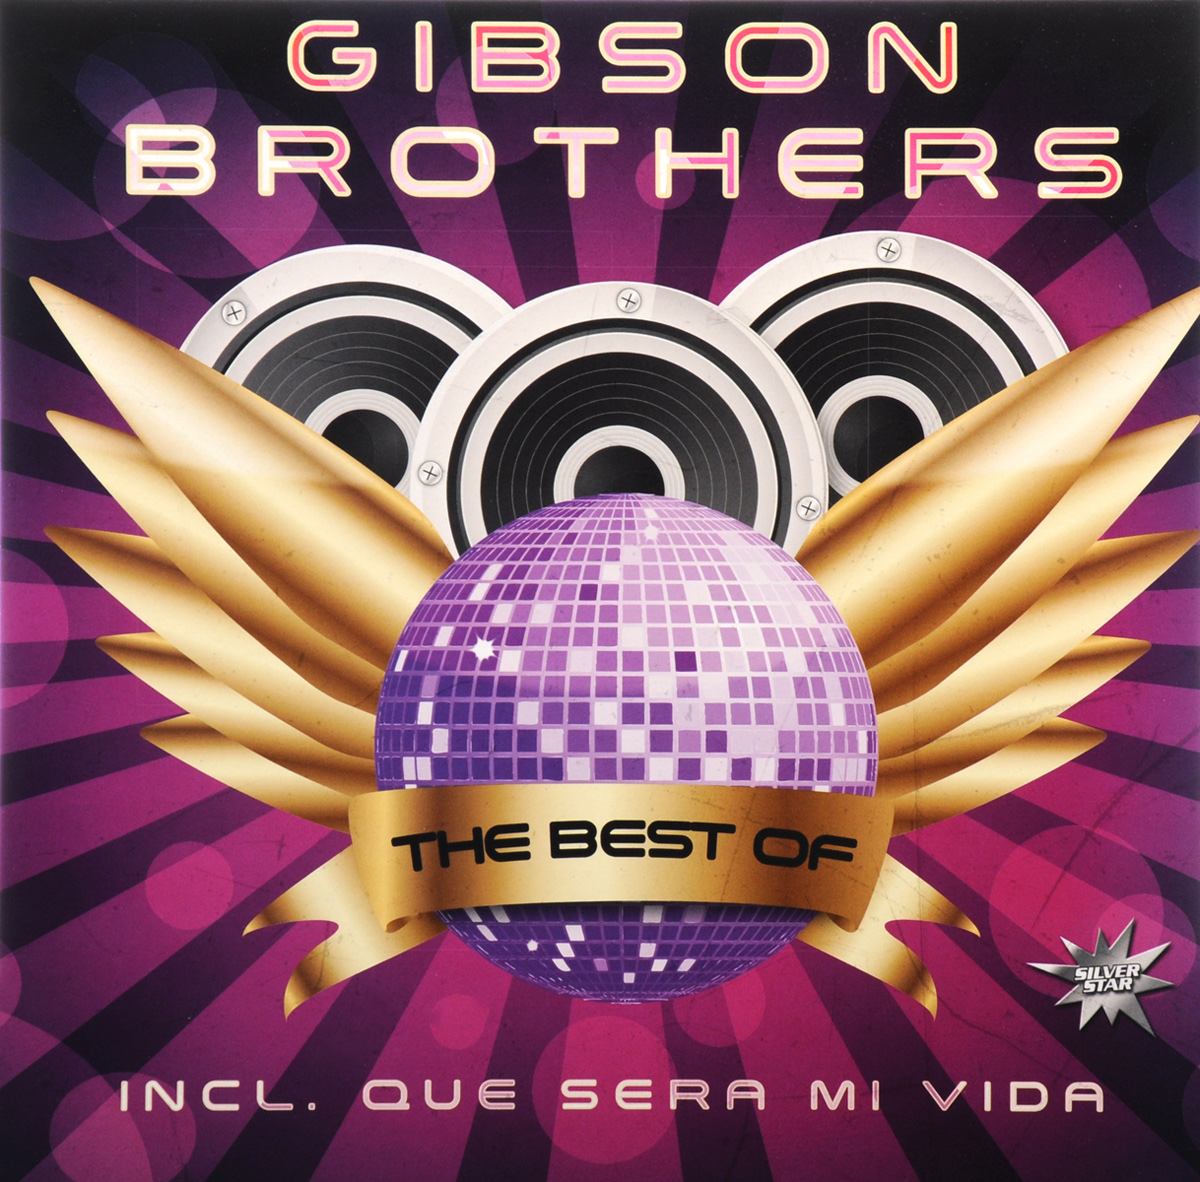 The Gibson Brothers Gibson Brothers. The Best Of (LP) sketches in lavender blue and green